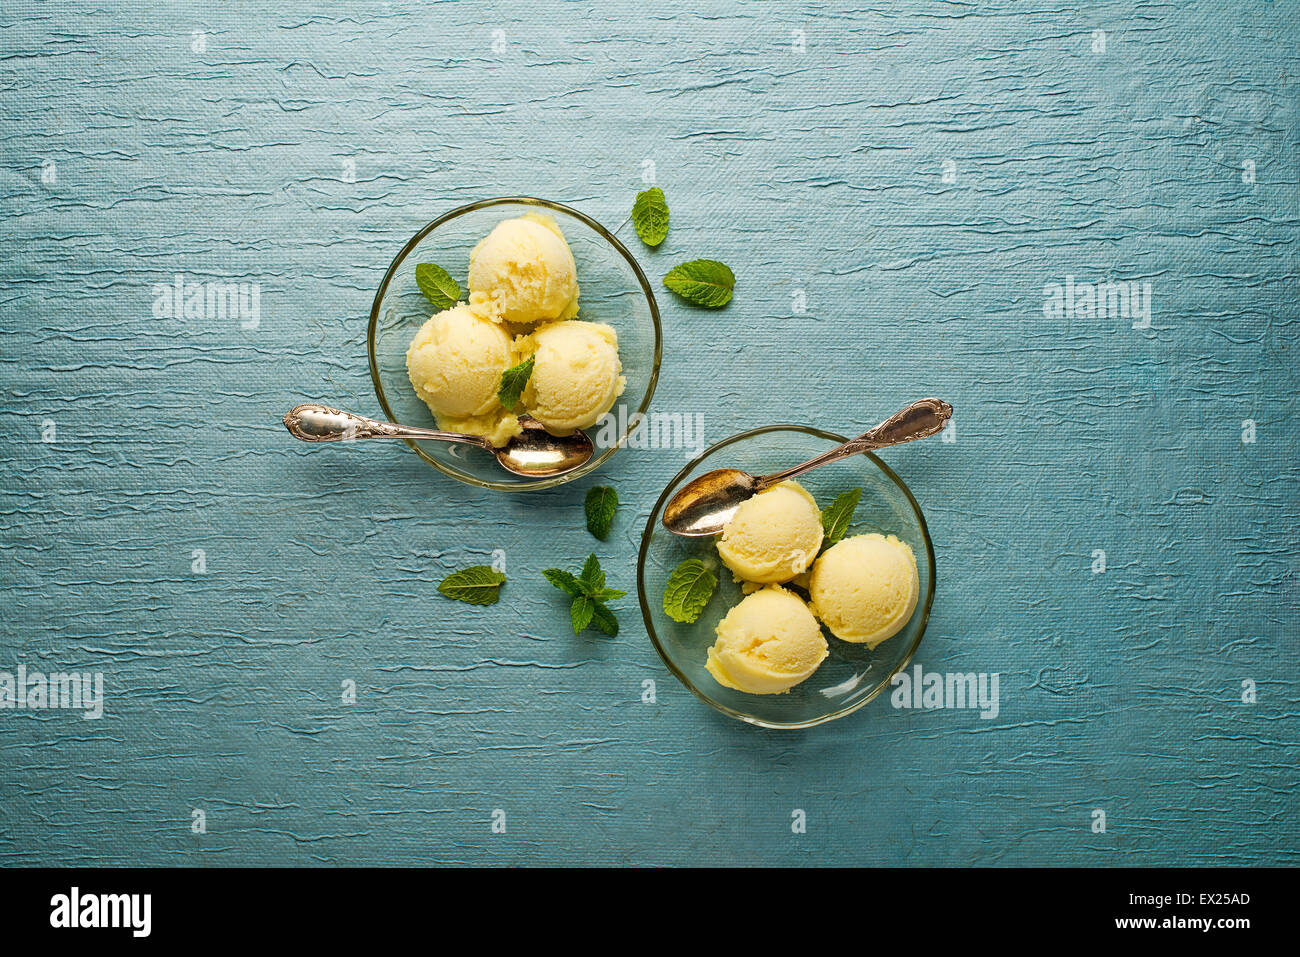 Fresh fruit sorbet ice cream in a glass plate - overhead shots. - Stock Image